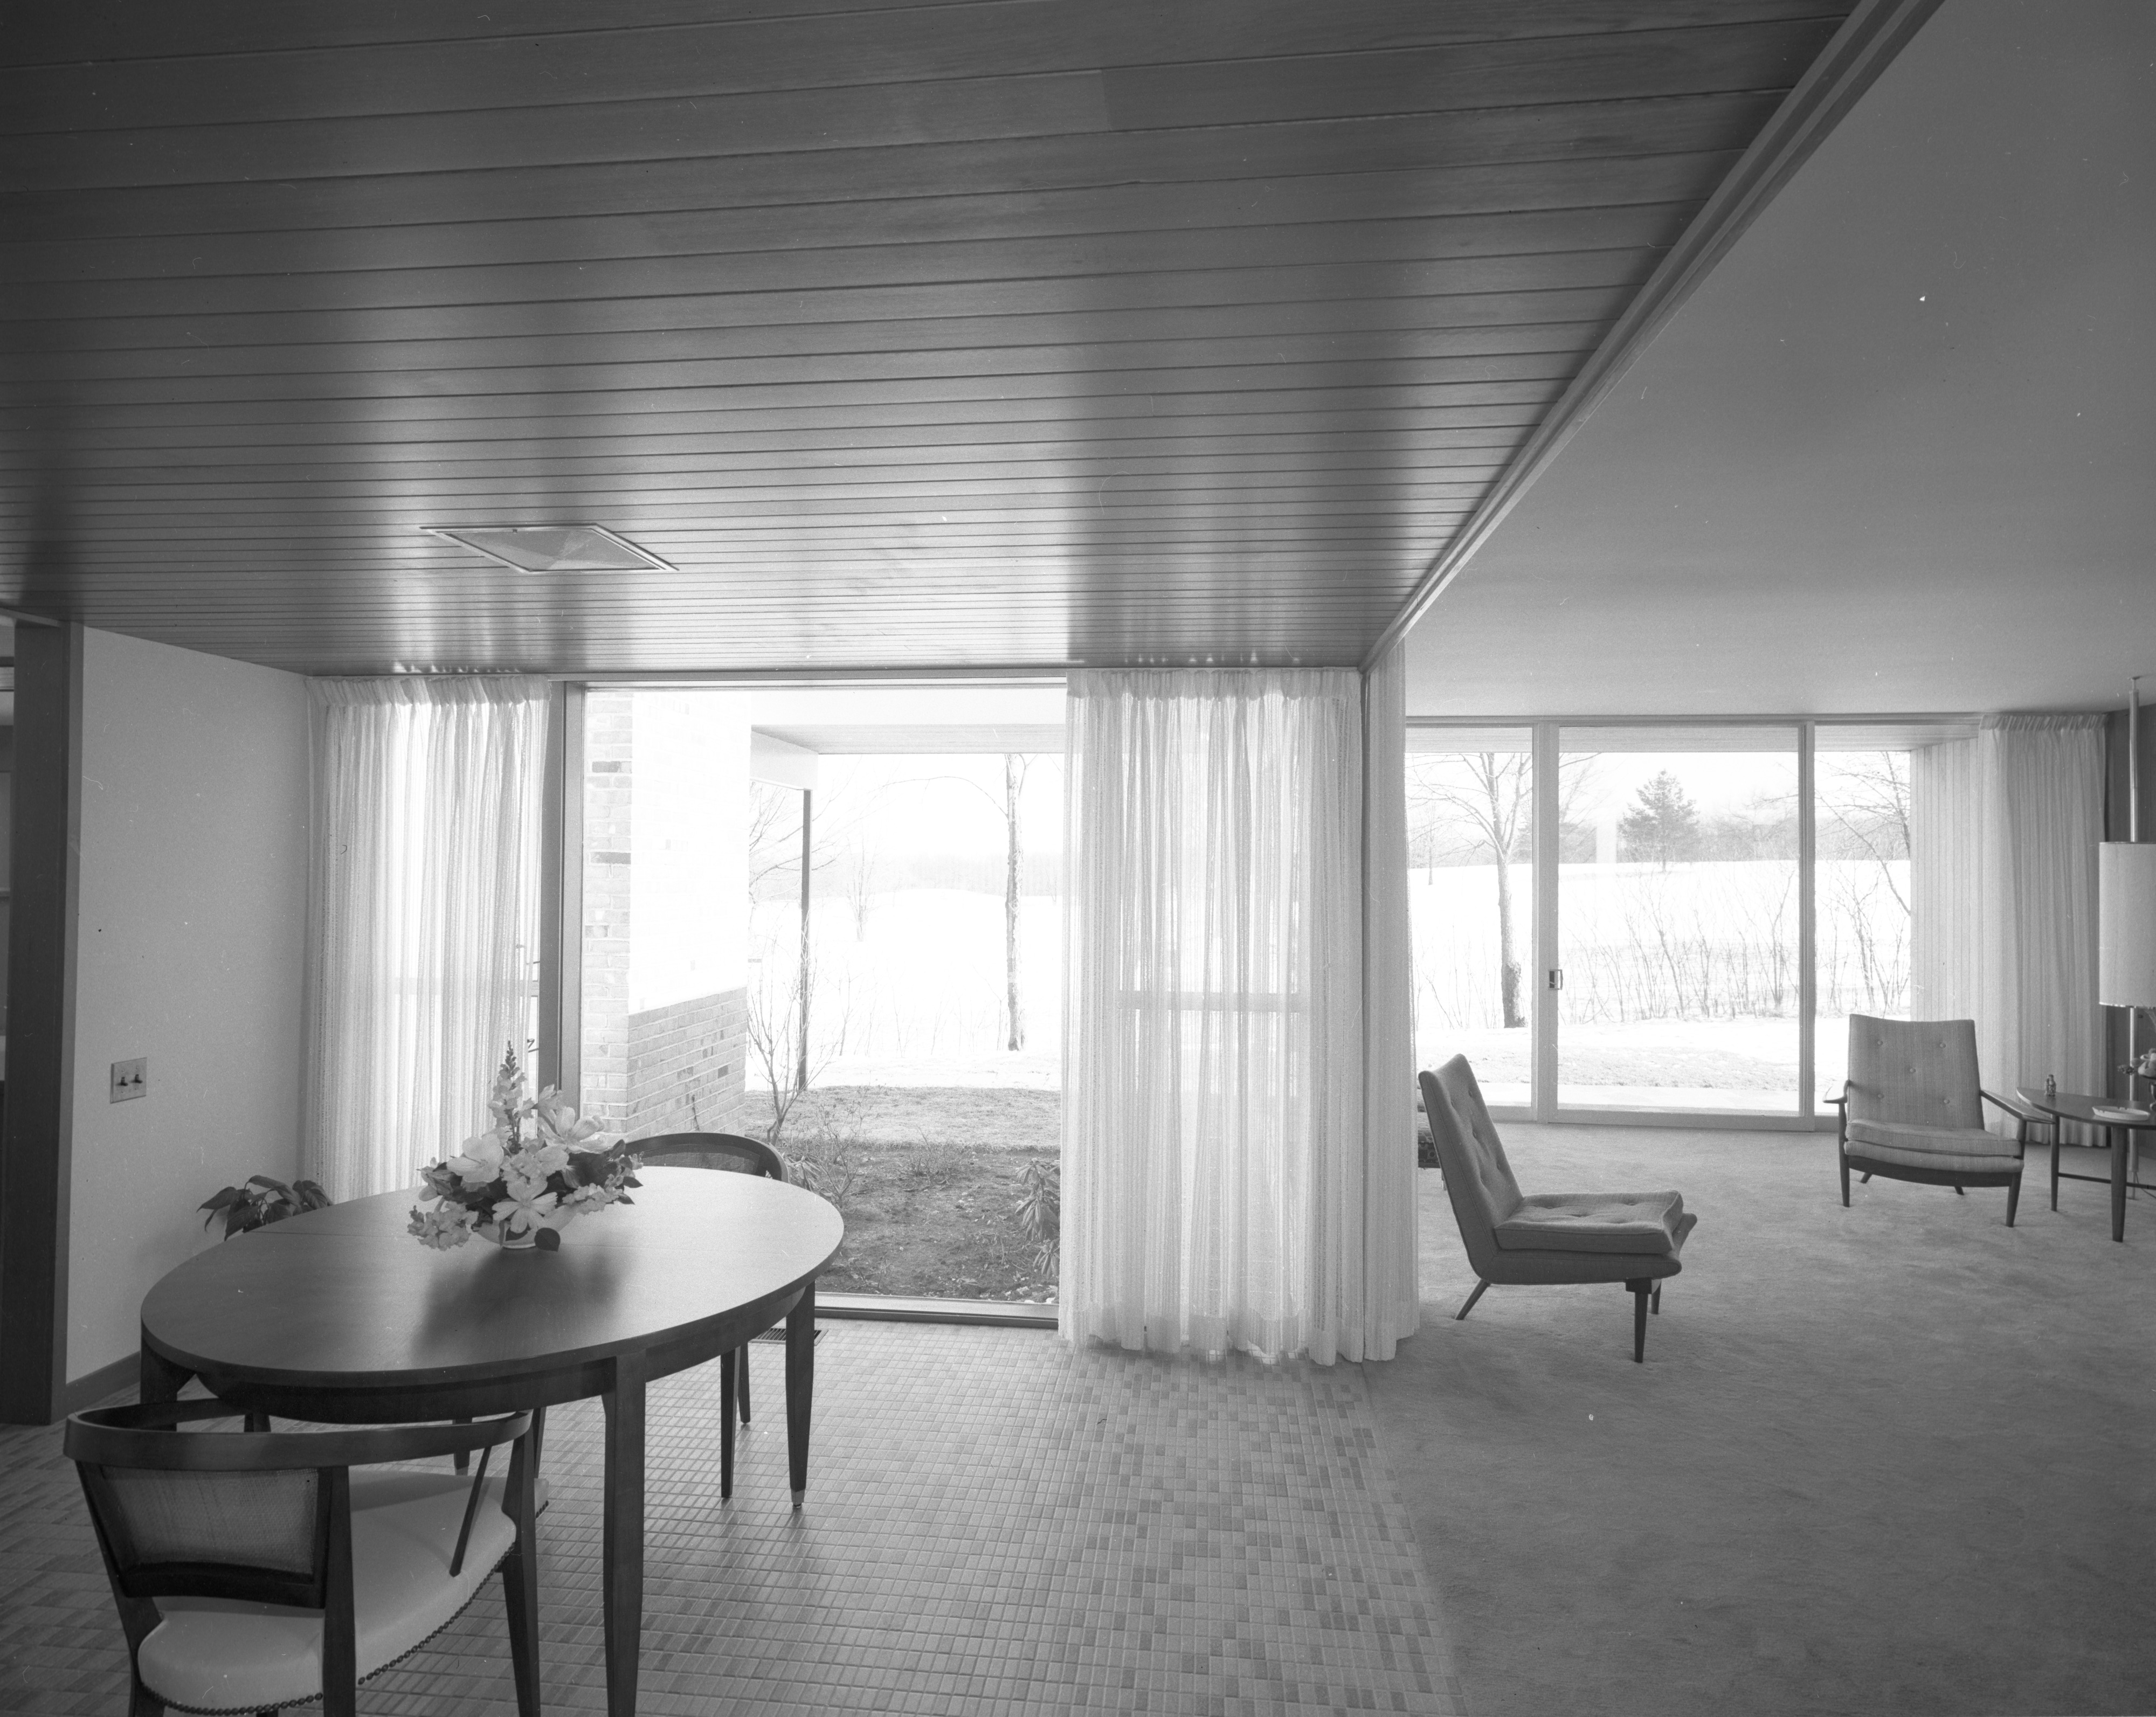 Paneling Provides Coziness in Dining Area of Botch Home, March 1959 image